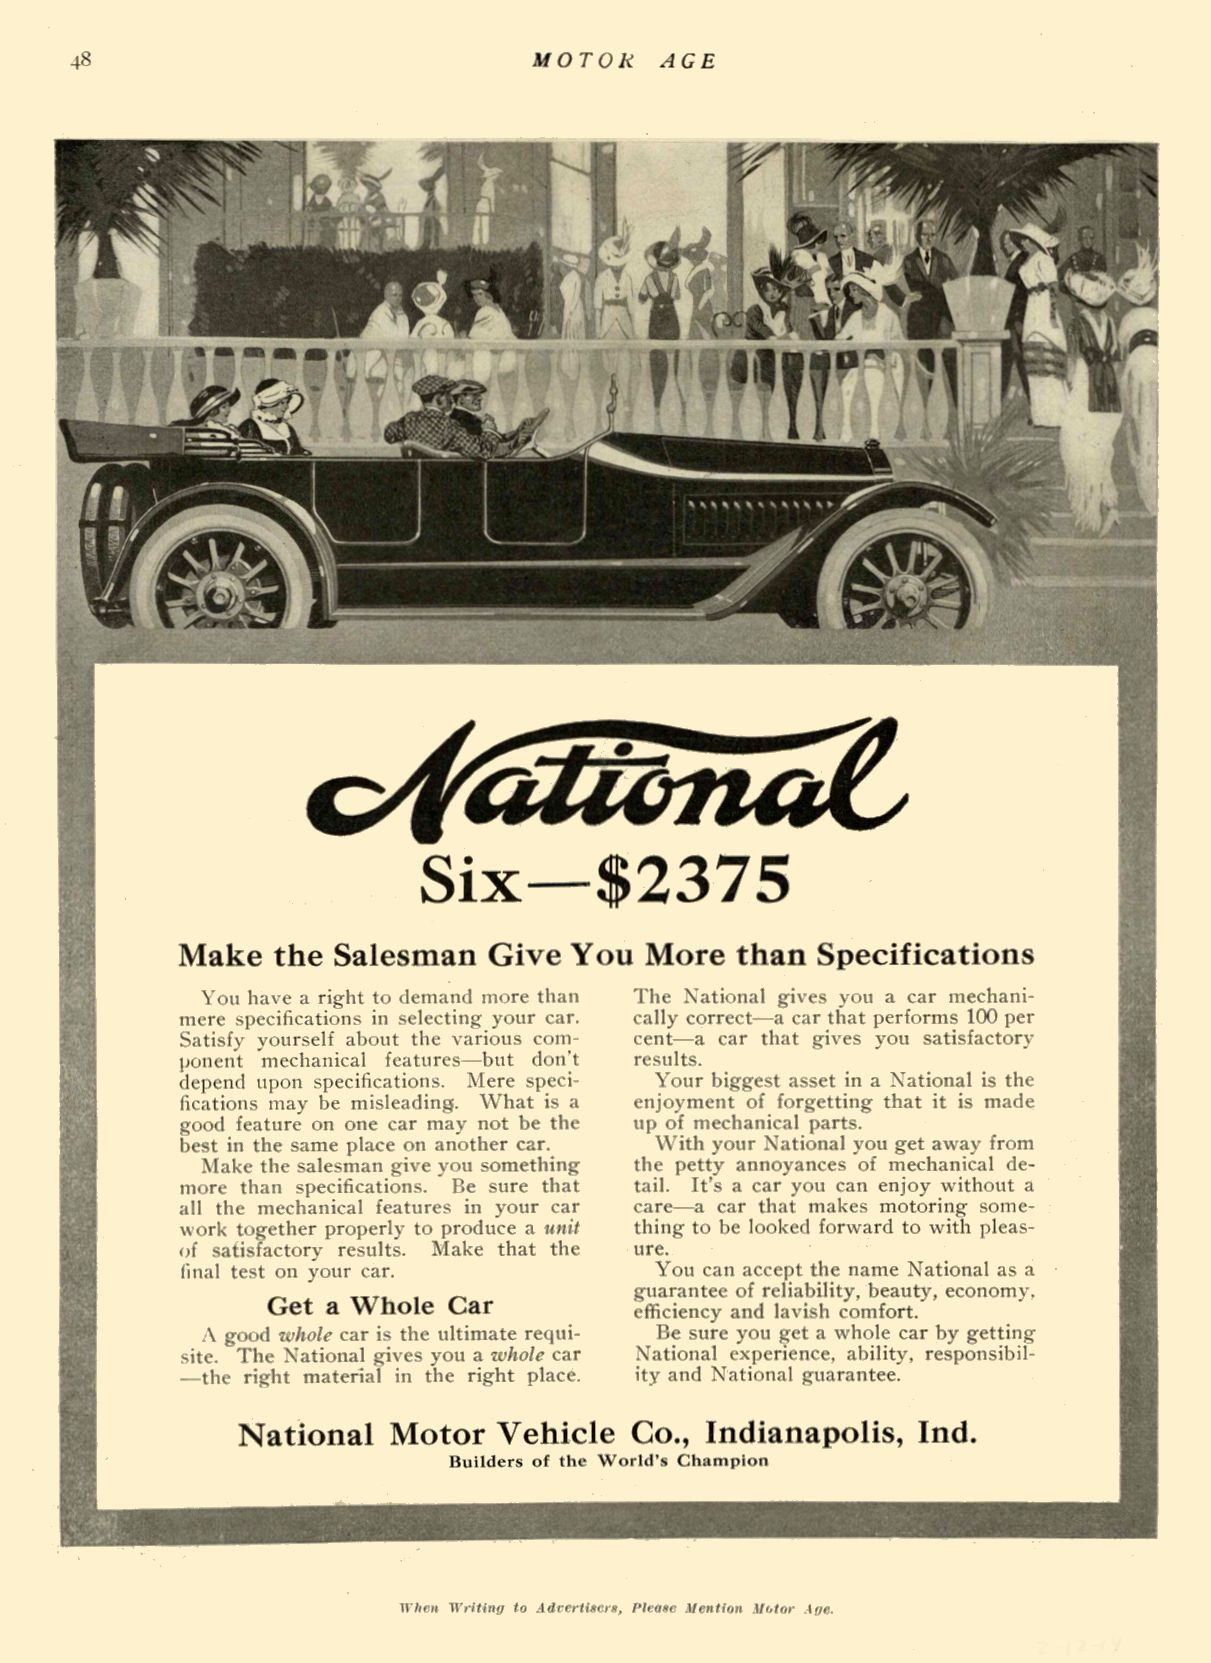 1914 2 12 NATIONAL National Six — $2375 National Motor Vehicle Co. Indianapolis, IND MOTOR AGE February 12, 1914 8.5″x12″ page 48